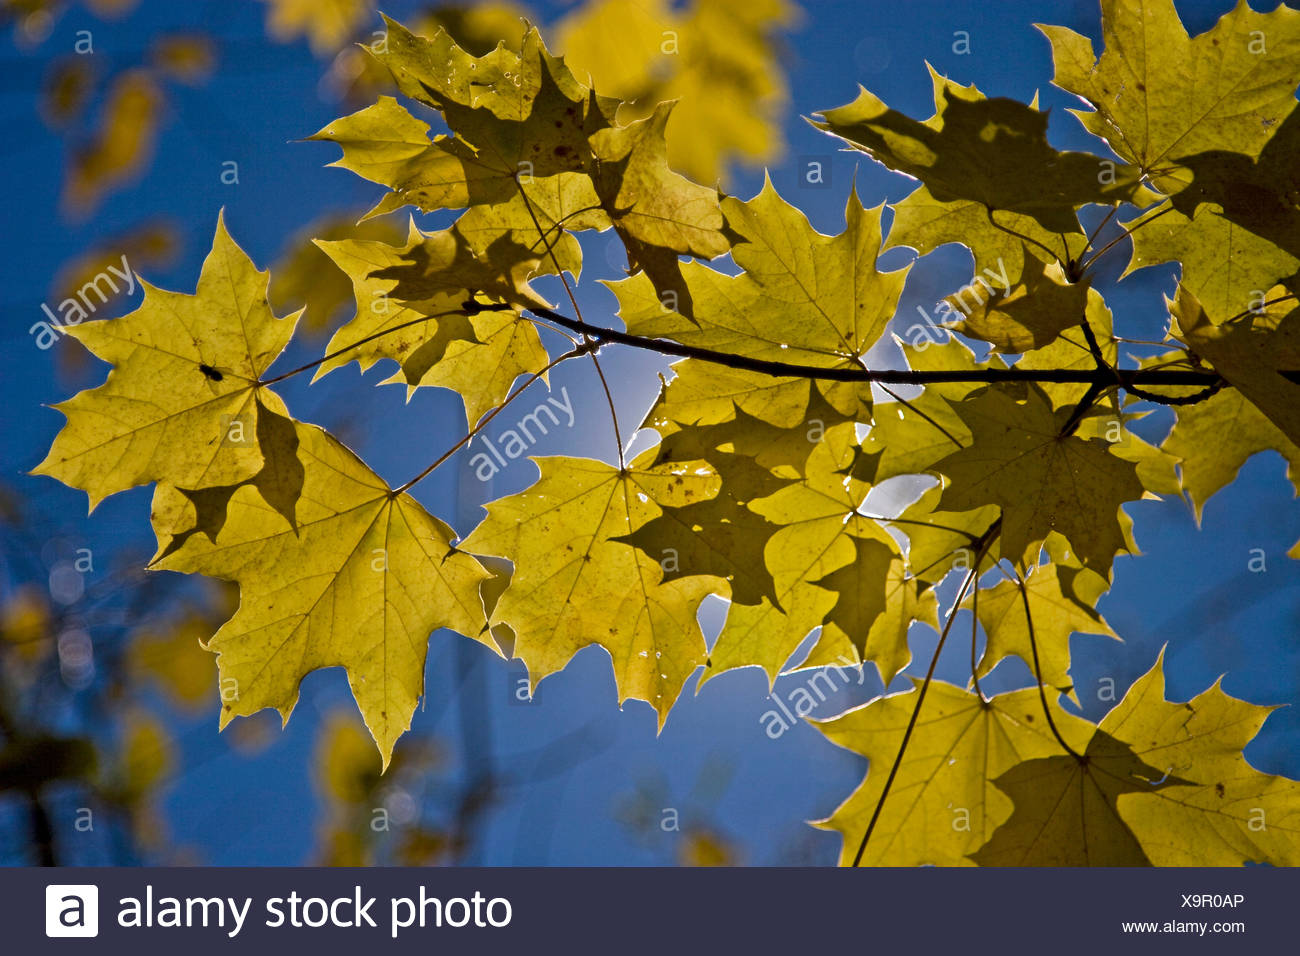 Herbst Bltter Stock Photos & Herbst Bltter Stock Images - Alamy